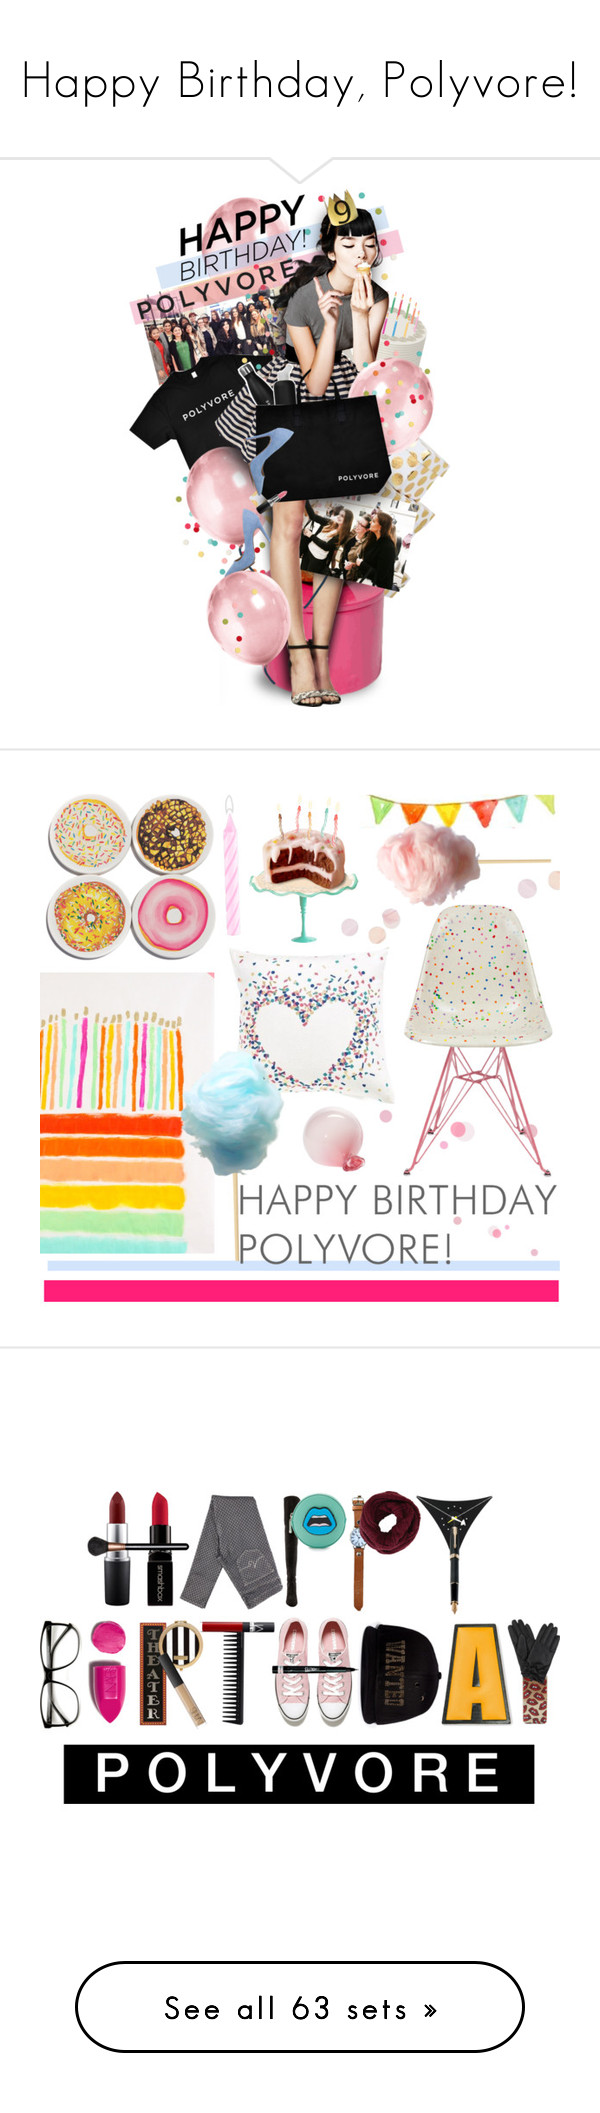 """""""Happy Birthday, Polyvore!"""" by polyvore-editorial ❤ liked on Polyvore featuring happybirthdaypolyvore, art, contestentry, RED Valentino, Christian Louboutin, Moschino, Dolce&Gabbana, women's clothing, women and female"""